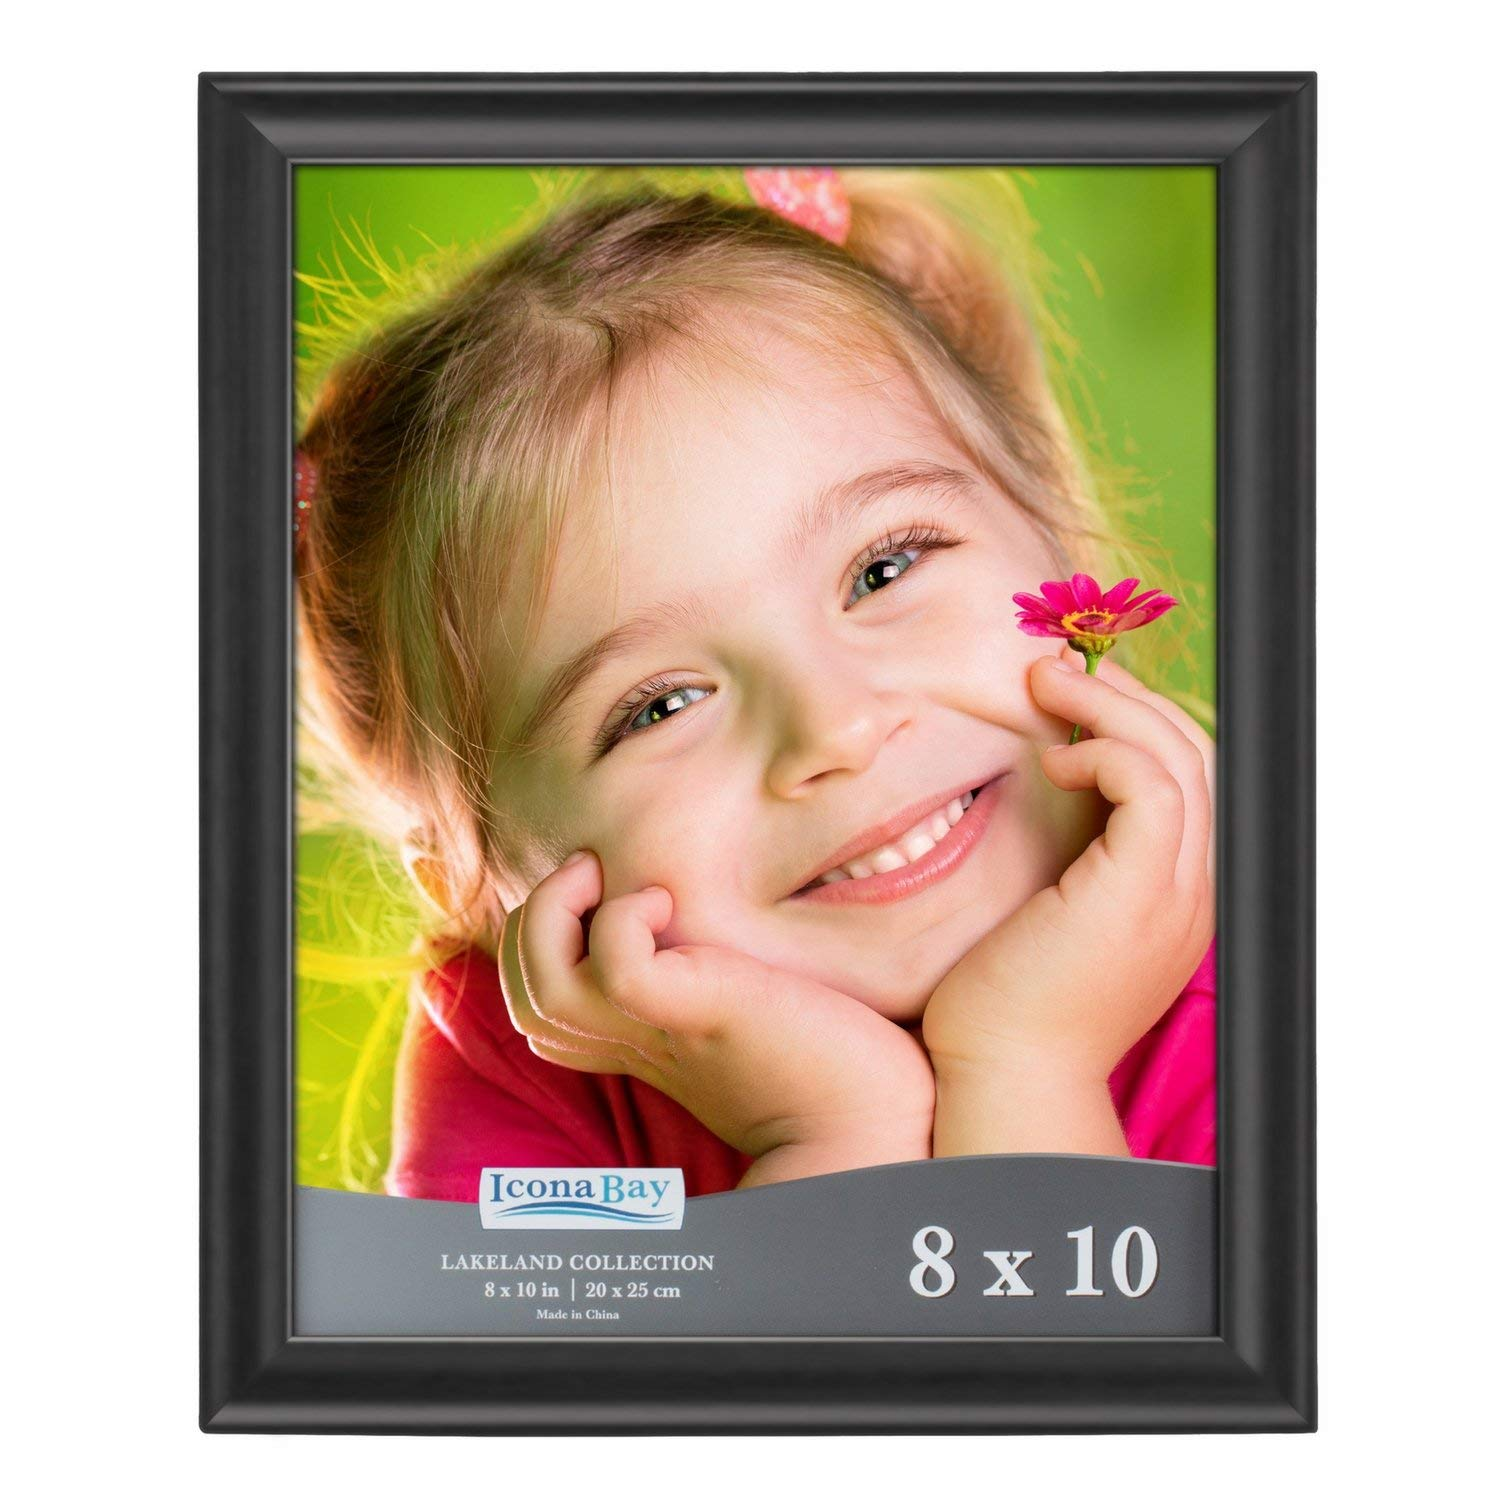 Icona Bay 8x10 Picture Frame (1 Pack, Black Wood Finish), Photo Frames for Wall or Table, Photo Frame 8x10, Black Picture Frames 8 x 10, Black Photo Frames 8x10, Wood Frame, Lakeland Collection